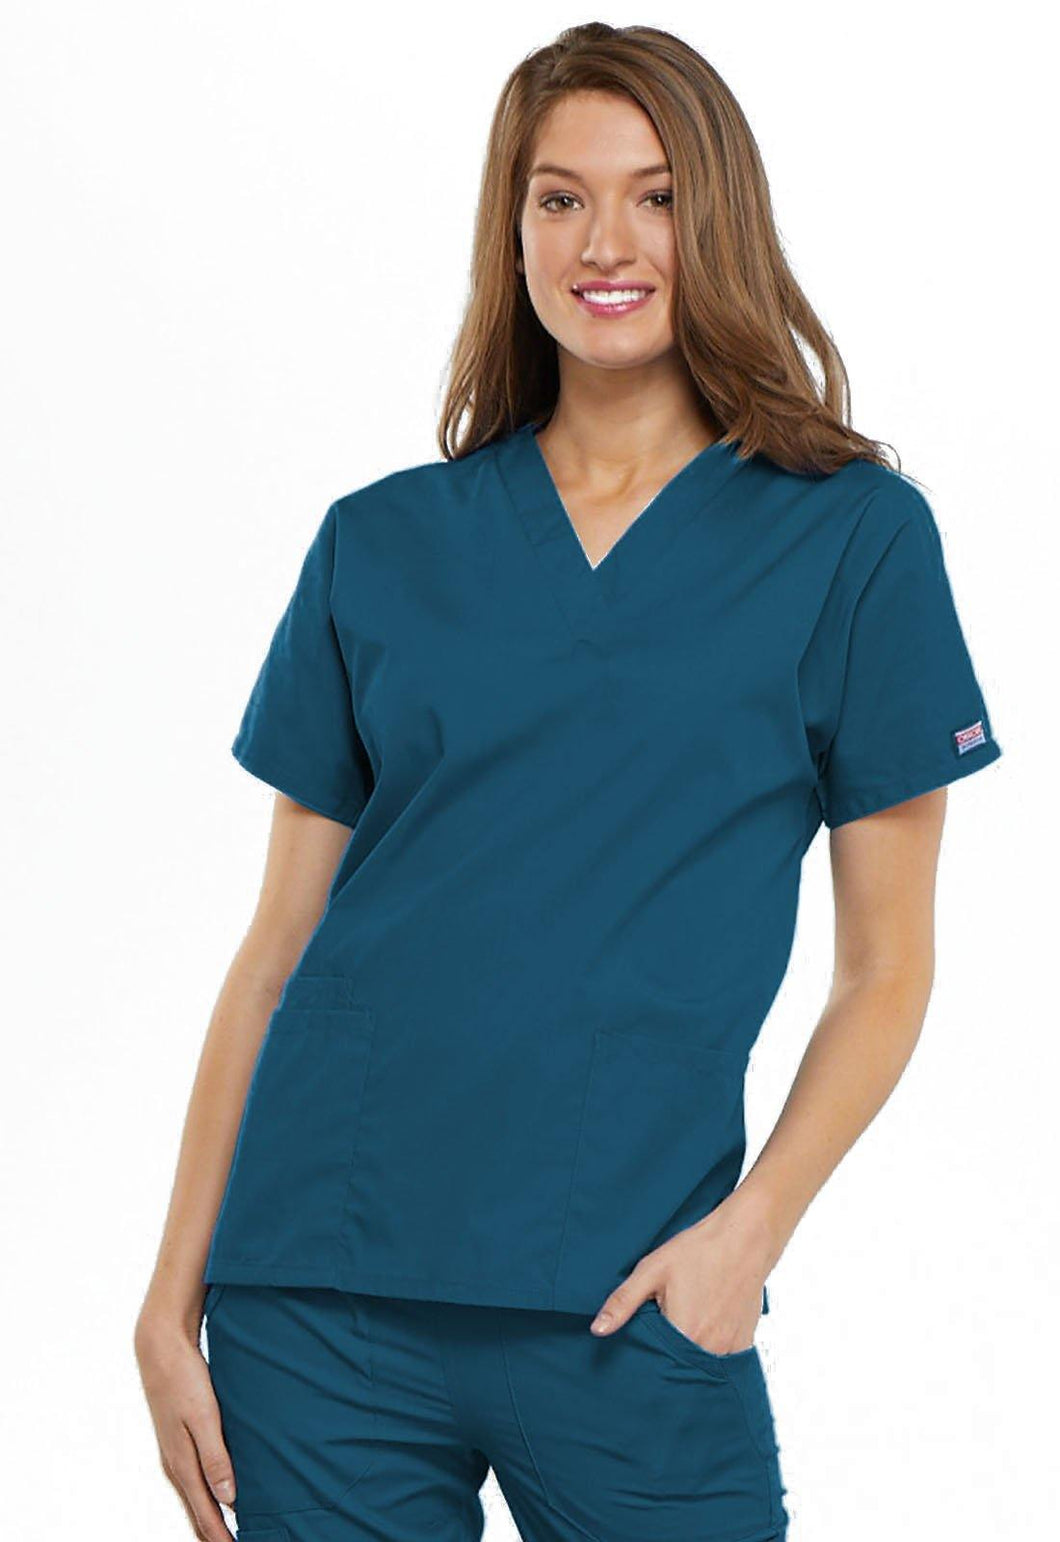 Cherokee WorkWear Originals V-Neck Scrub Top Caribbean Blue 4700 - Scrubsnmed